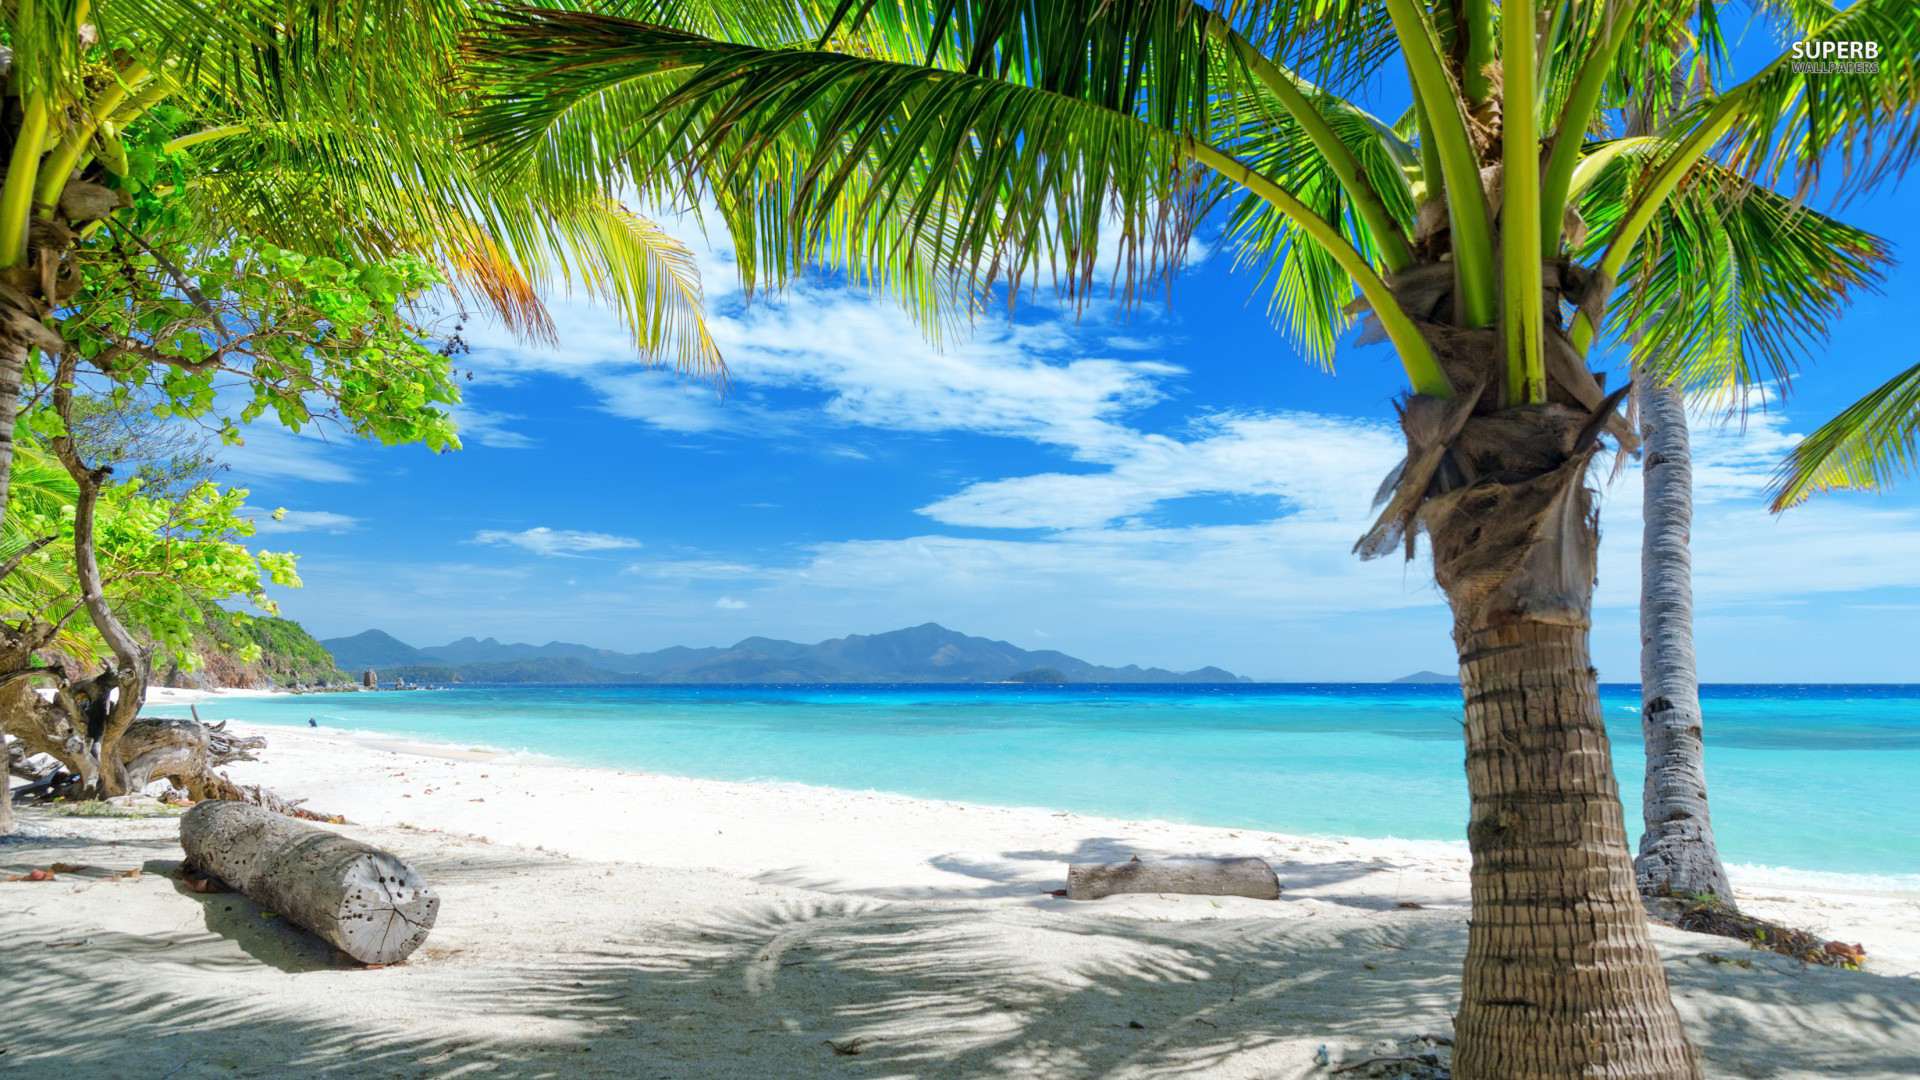 tropical beach hd wallpapers   Desktop Backgrounds for Free HD .